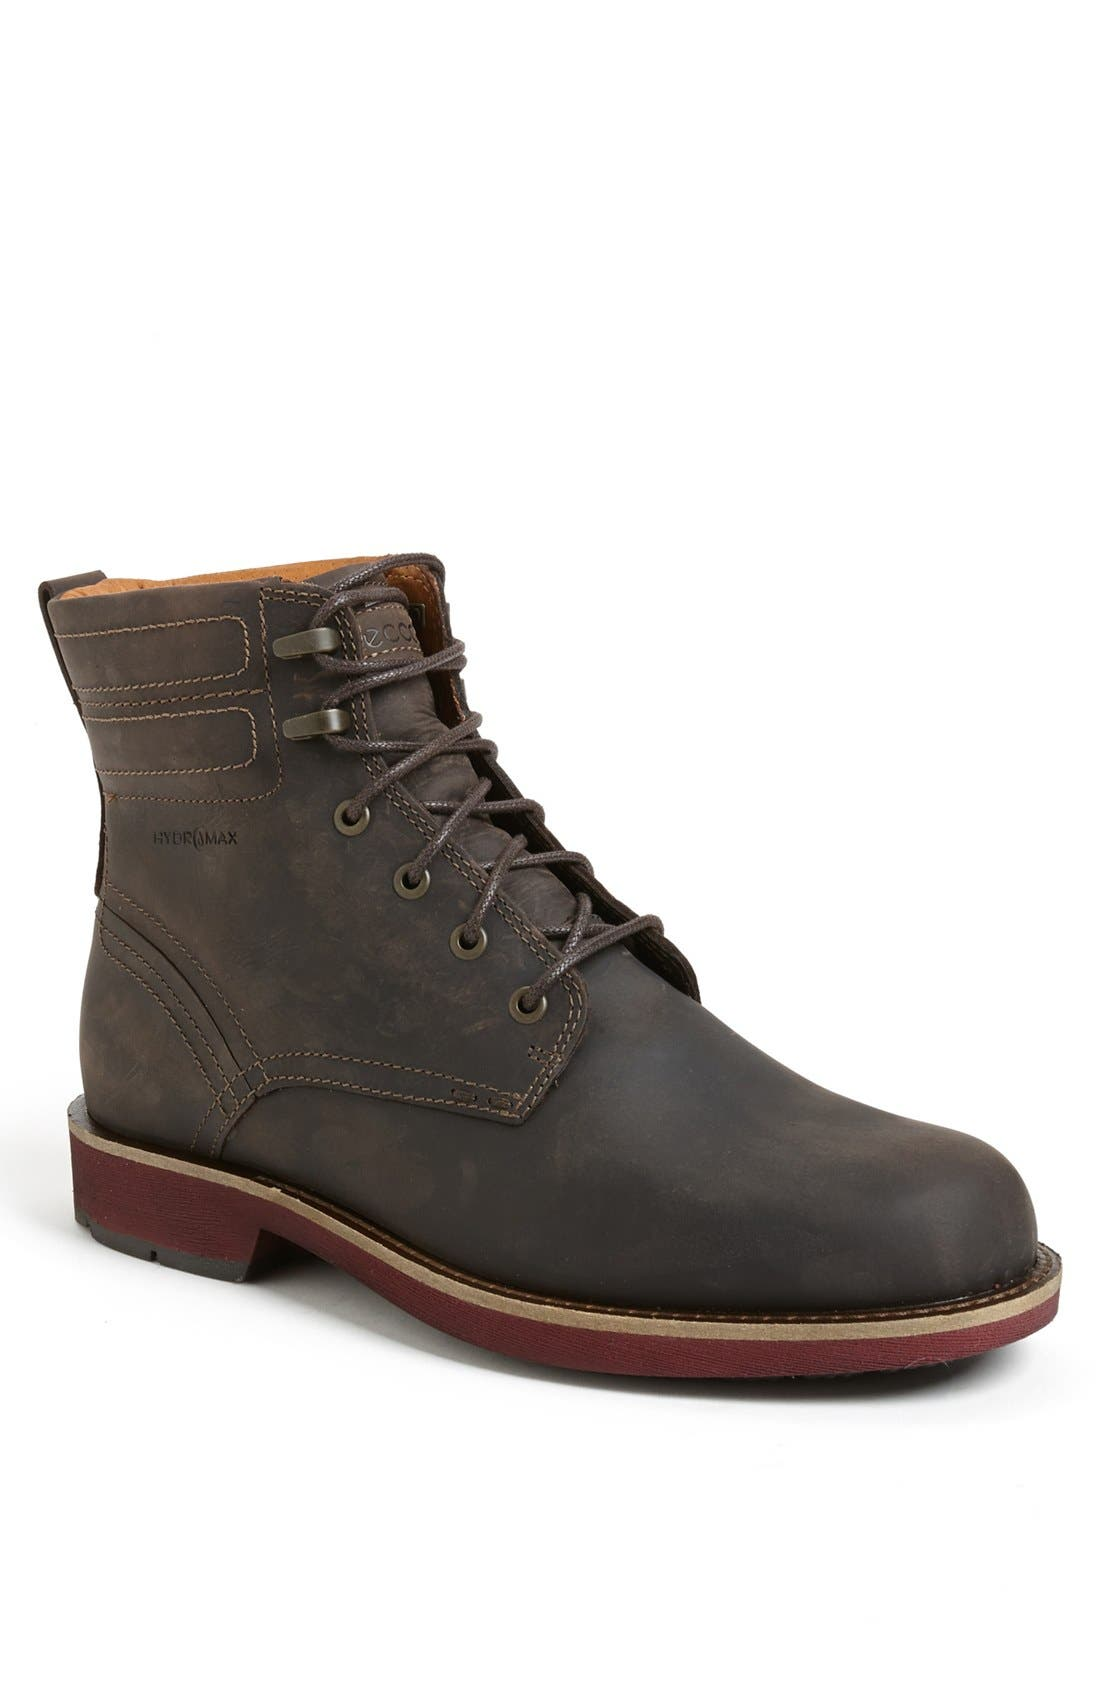 Main Image - ECCO 'Bendix' Plain Toe Boot (Men)